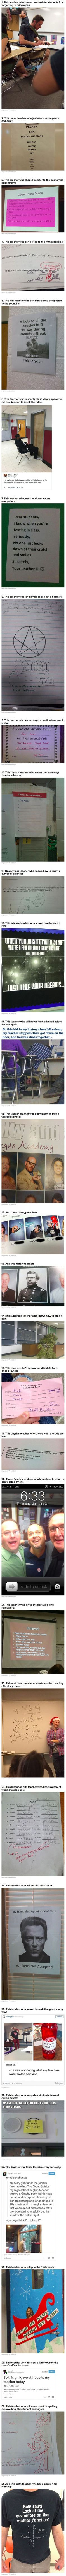 31 Times The Teachers And Schools Were Awesome